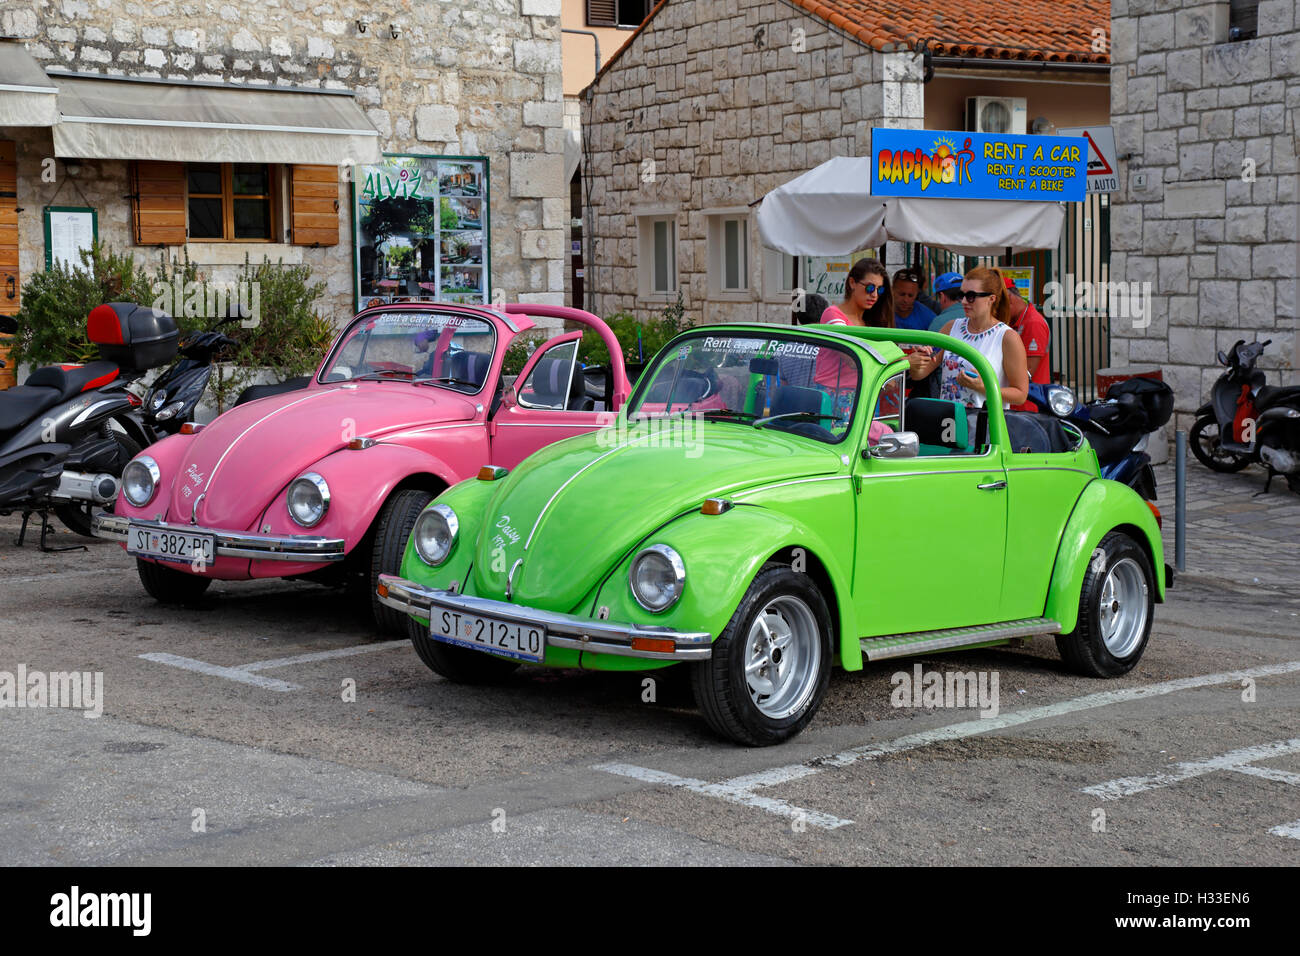 Hire Cars Stock Photos & Hire Cars Stock Images - Alamy